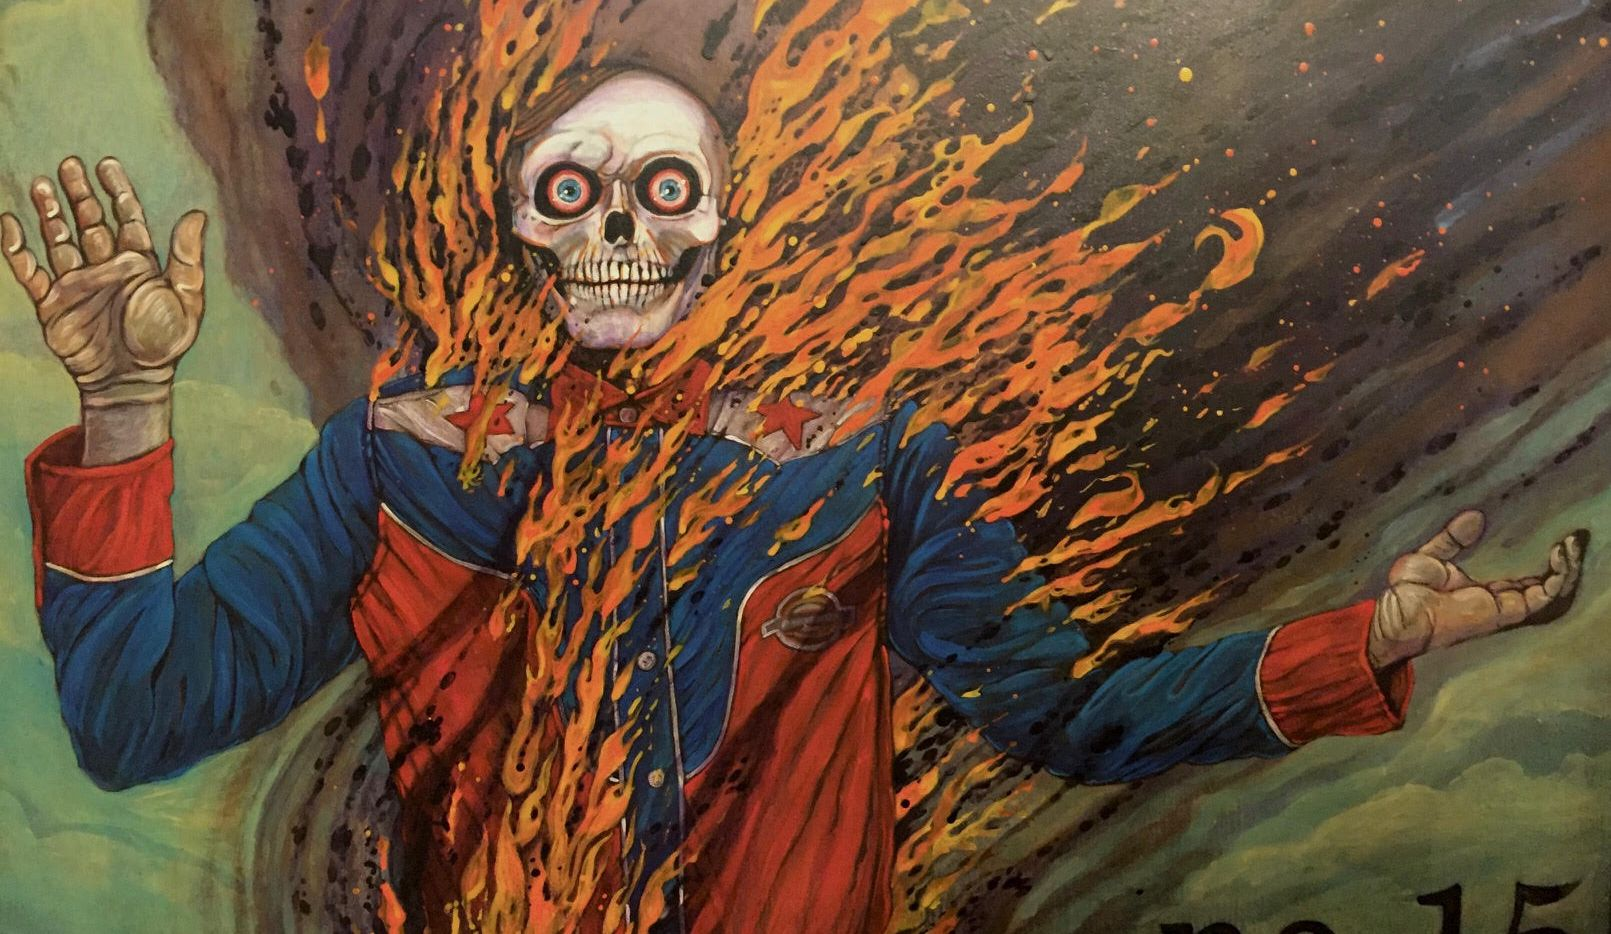 Dallas artist Brian K. Jones made this piece as part of a series of self-portraits as burning Big Tex.